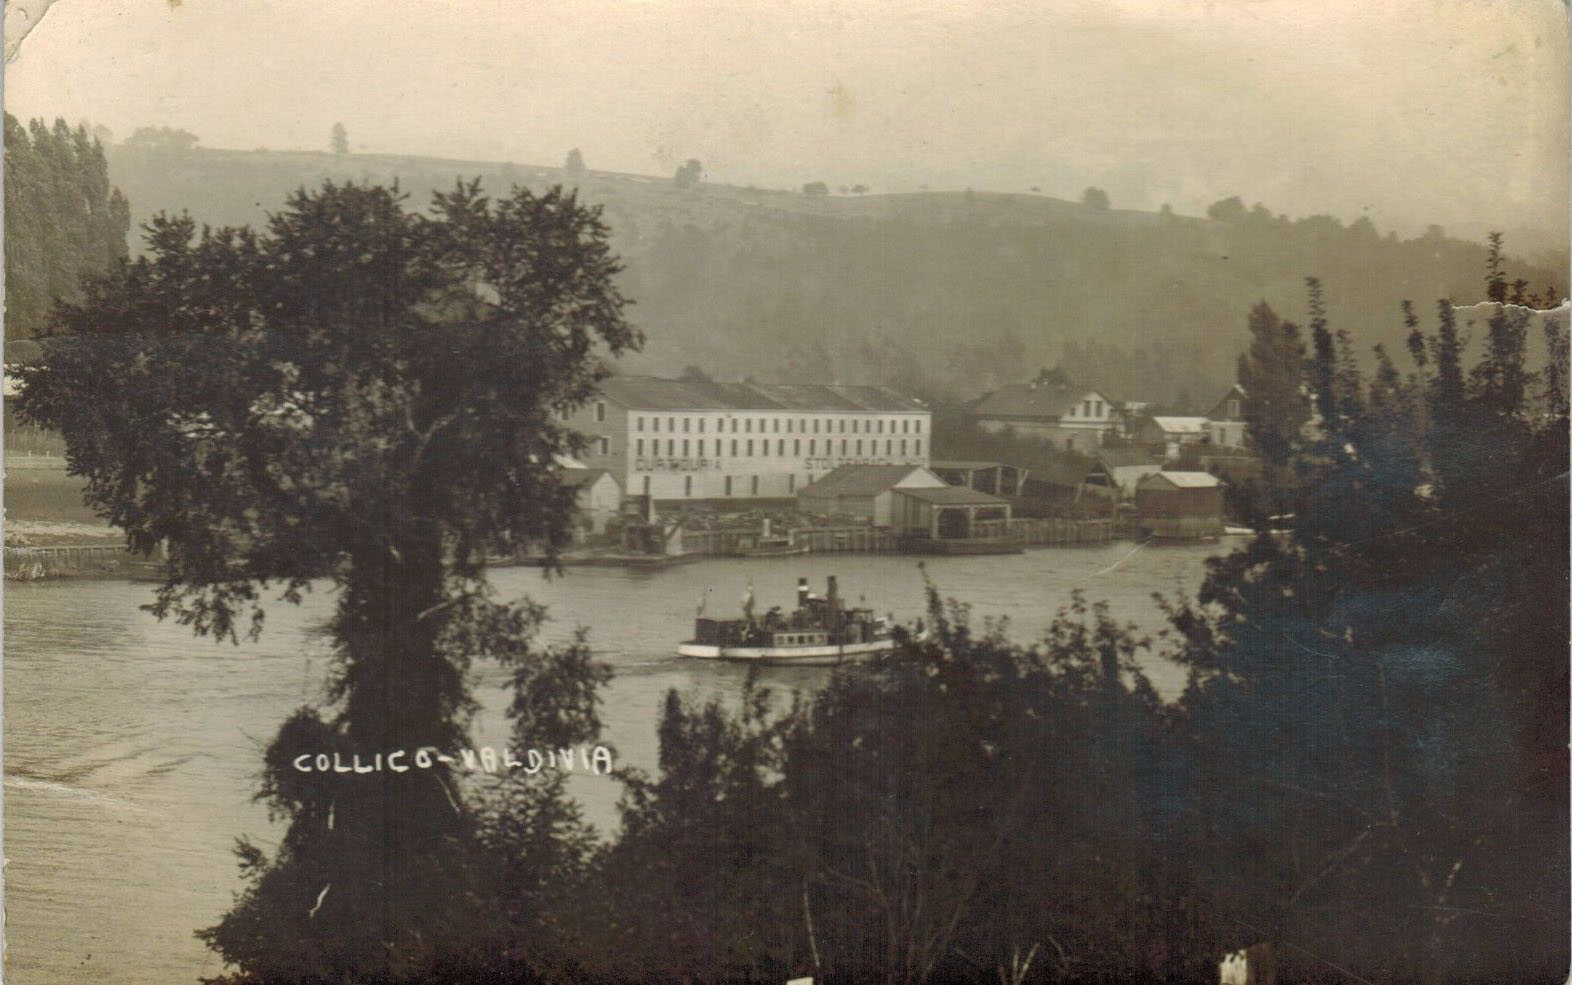 Enterreno - Fotos históricas de chile - fotos antiguas de Chile - Collico, Valdivia en 1925